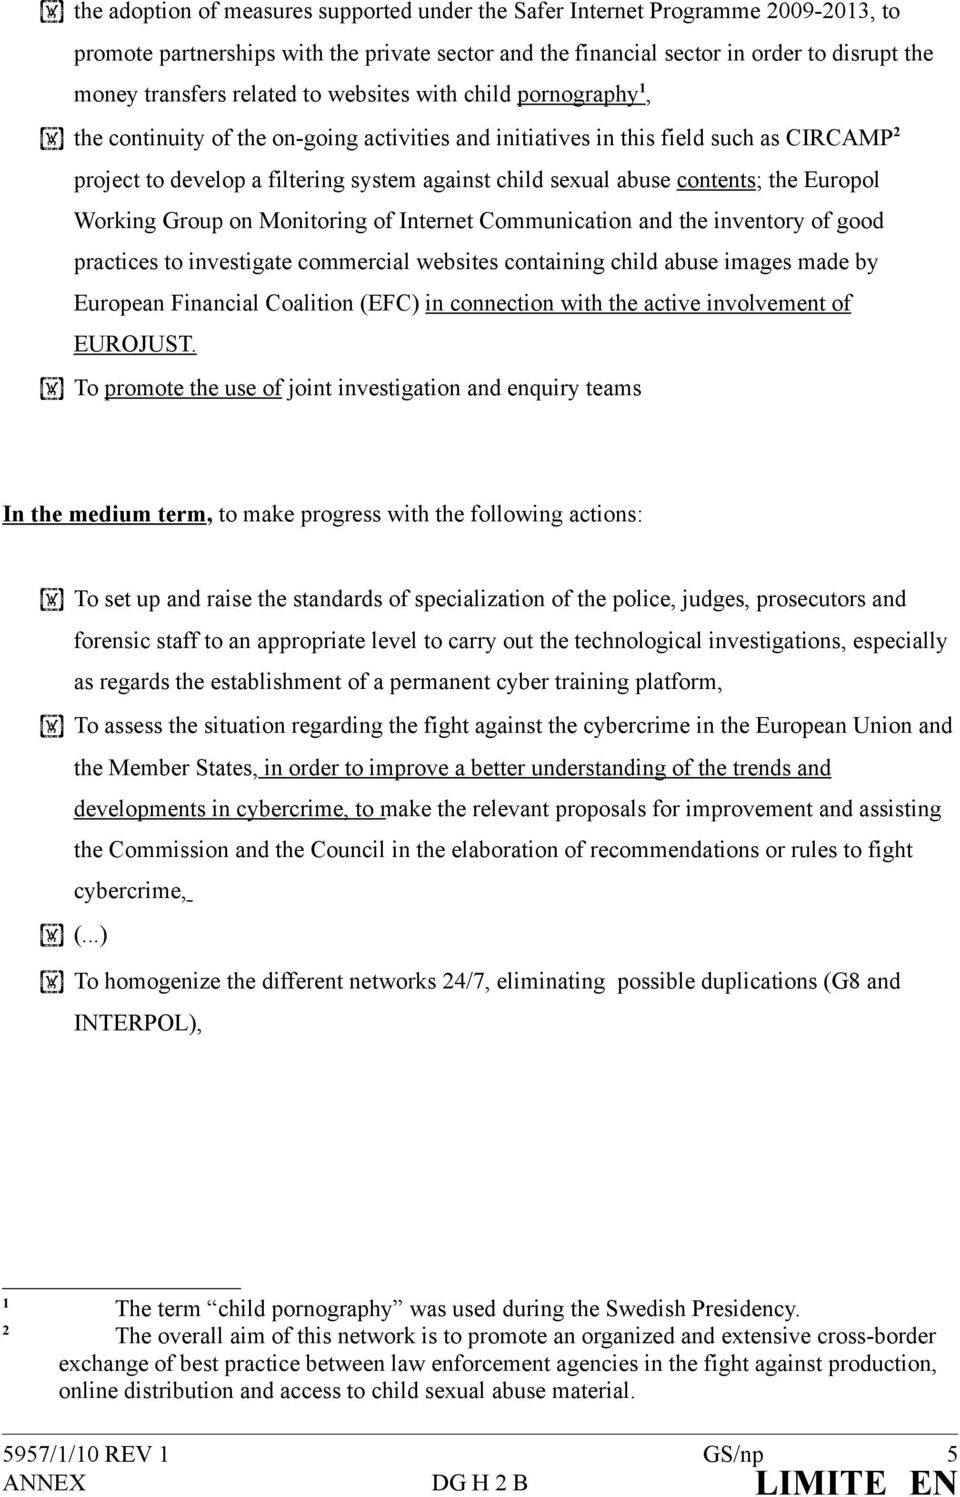 abuse contents; the Europol Working Group on Monitoring of Internet Communication and the inventory of good practices to investigate commercial websites containing child abuse images made by European